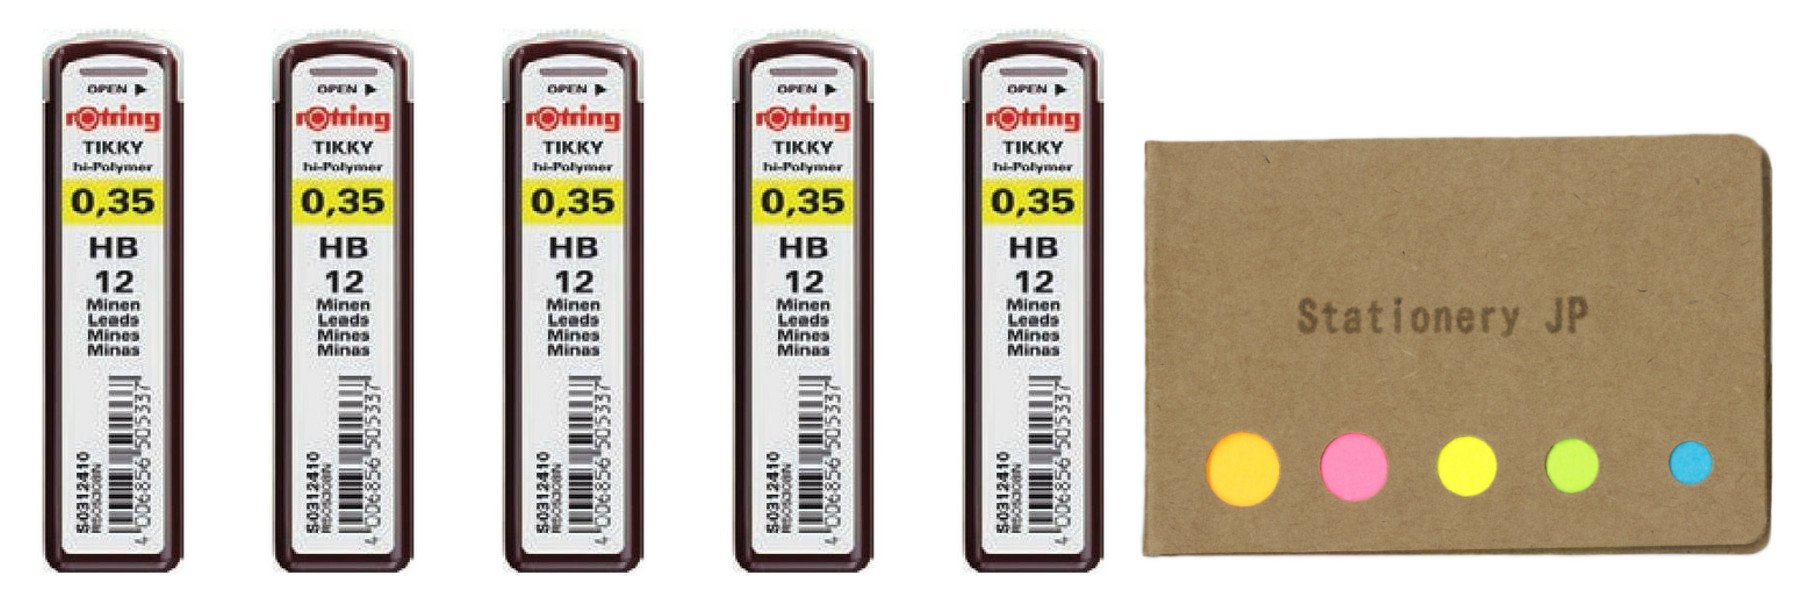 Rotring Tikky Mechanical Pencil Leads 0.35mm HB, 5 Pack/total 60 Leads, Sticky Notes Value Set